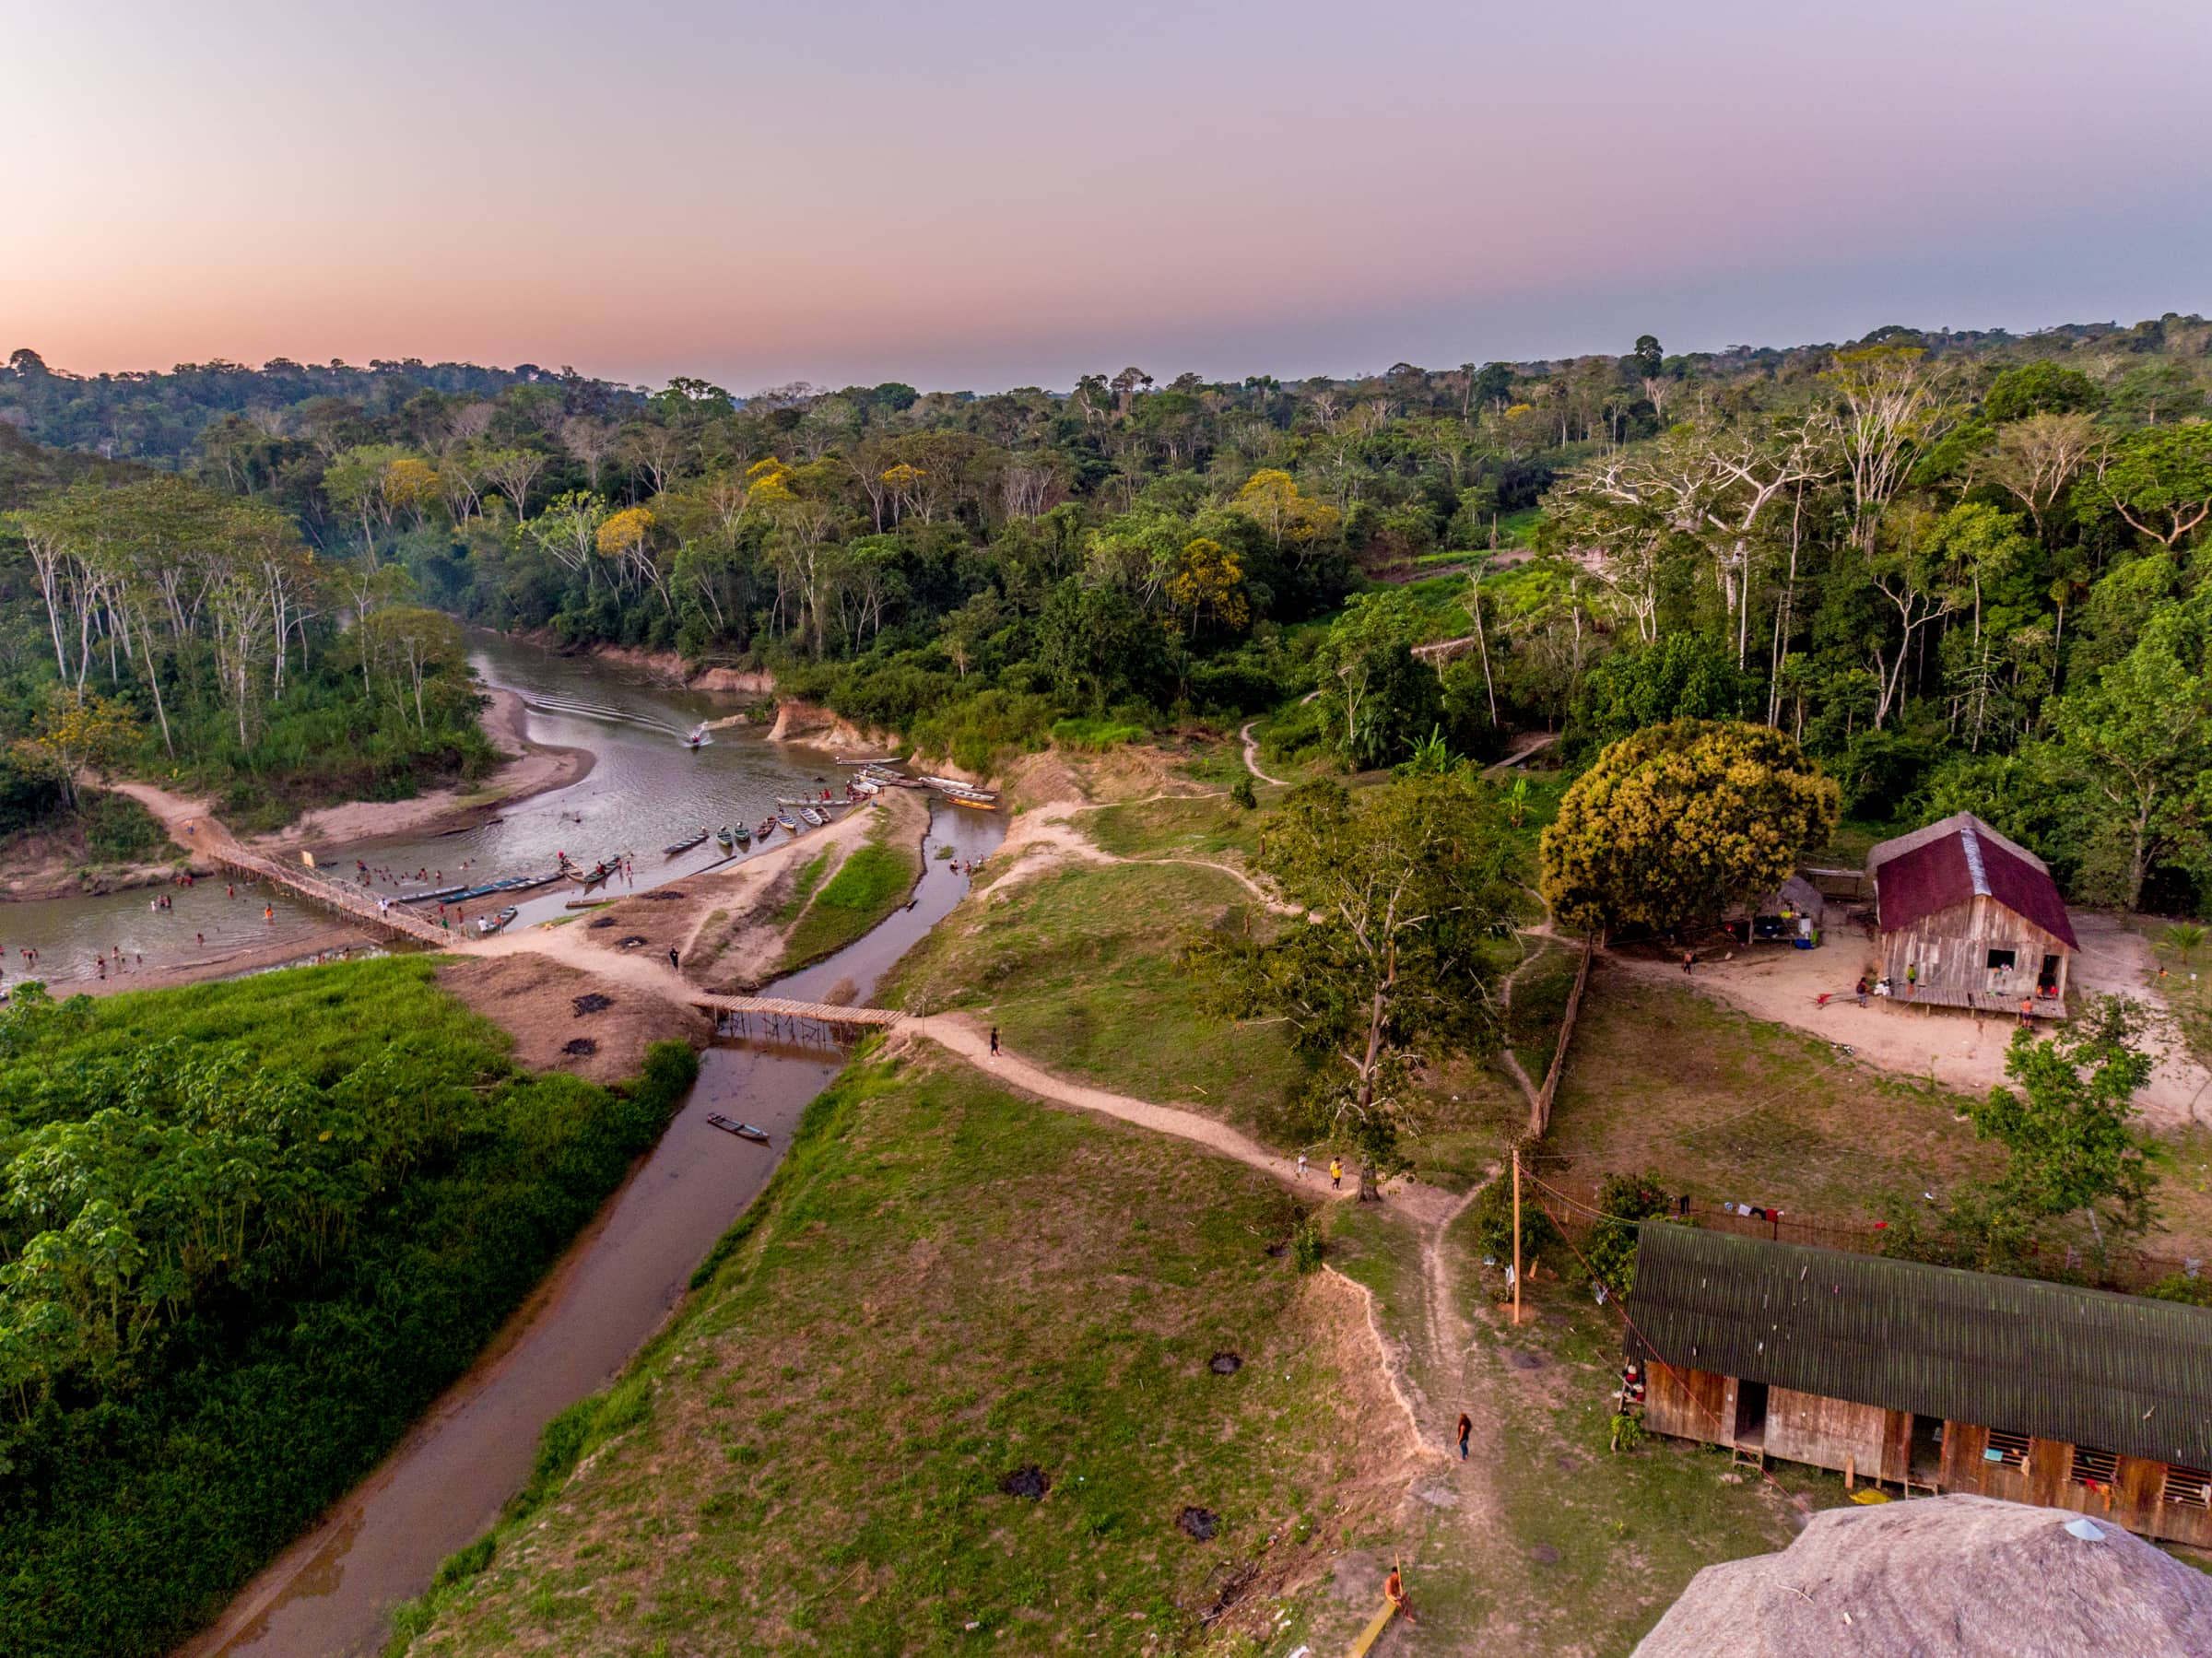 Aerial view of Mutum village, one of 9 village of the Yawanawá tribe along the Gregory River